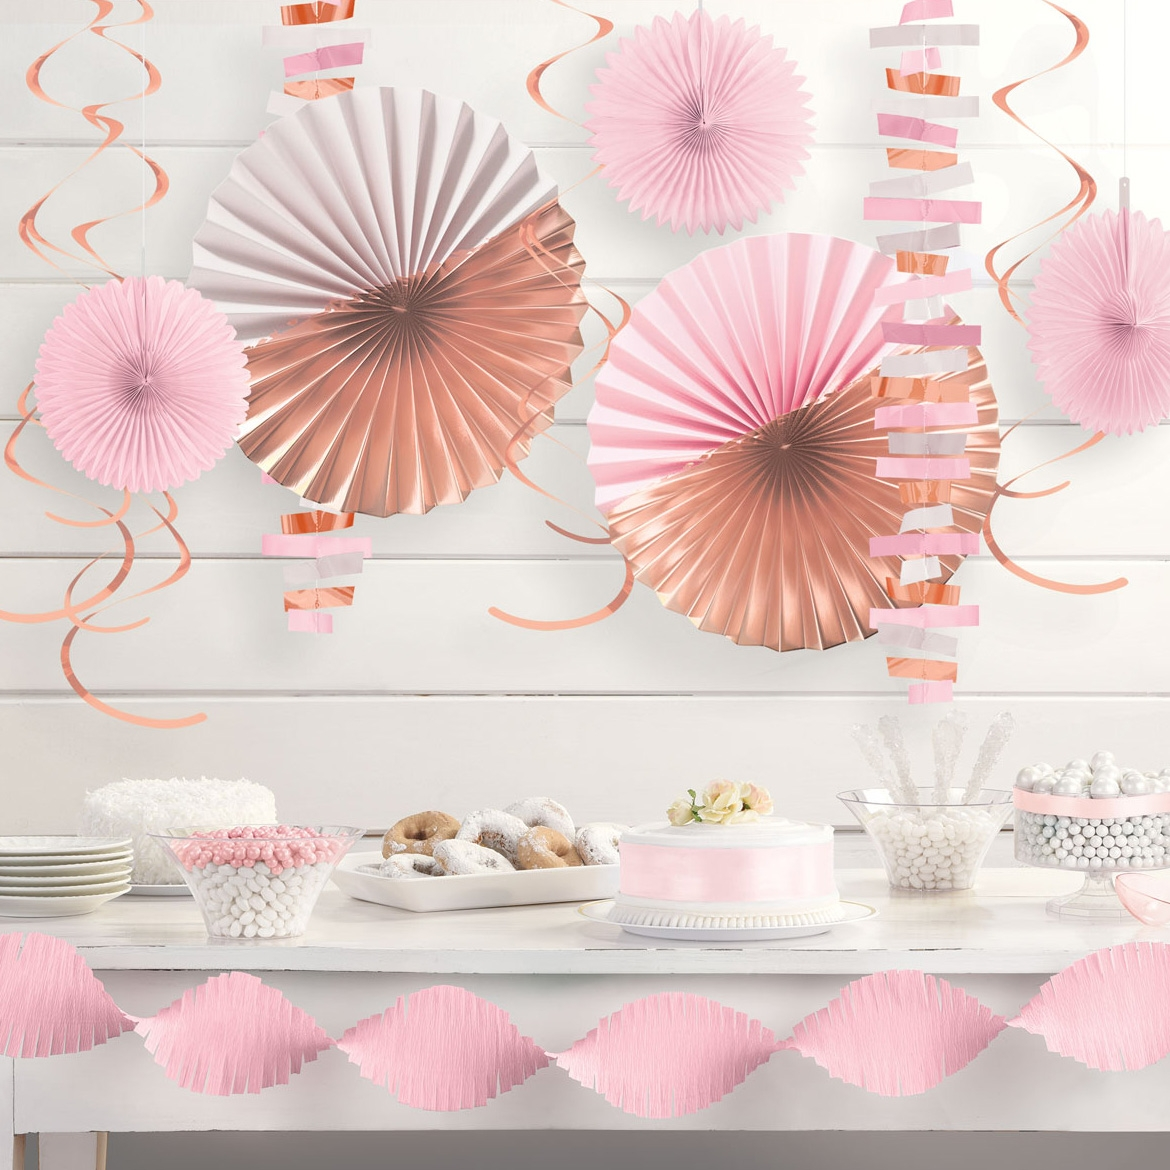 Click to view product details and reviews for Room Party Decoration Kit Rose Gold Blush.